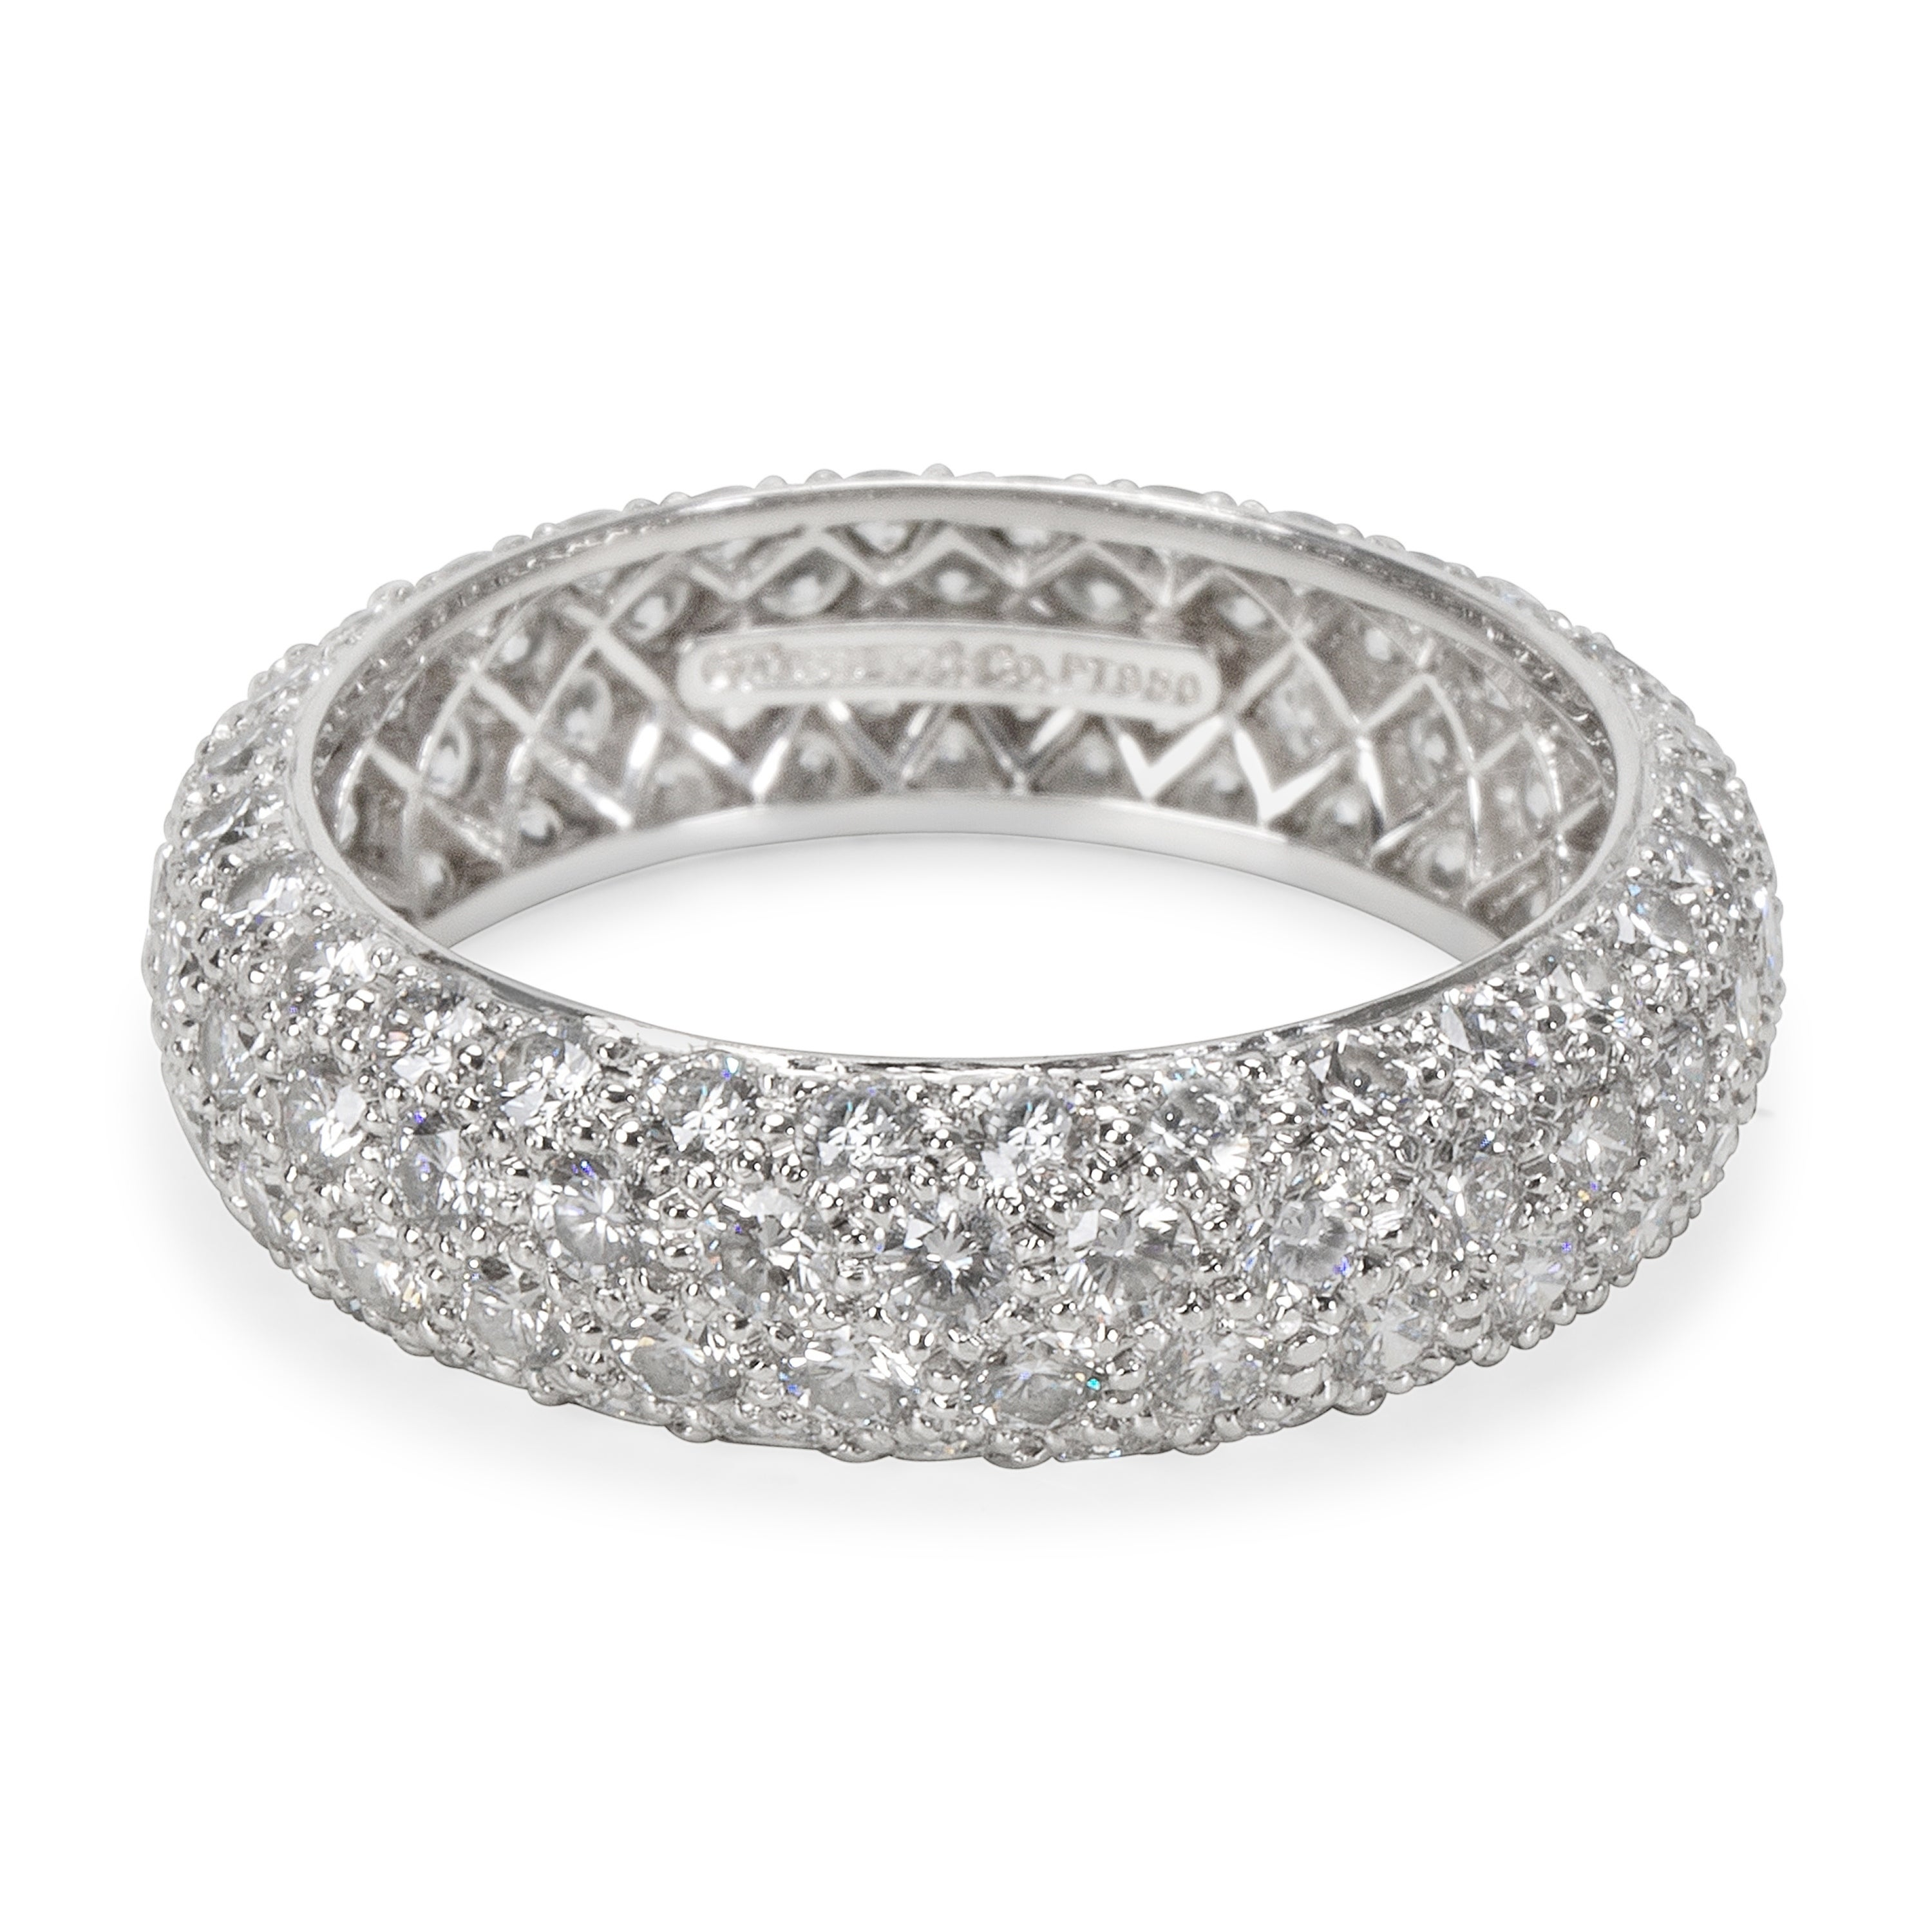 43bfaae95 Pre-Owned Tiffany & Co. Etoile 4 Rows Pave Diamond Ring in Platinum 2.90  Carats